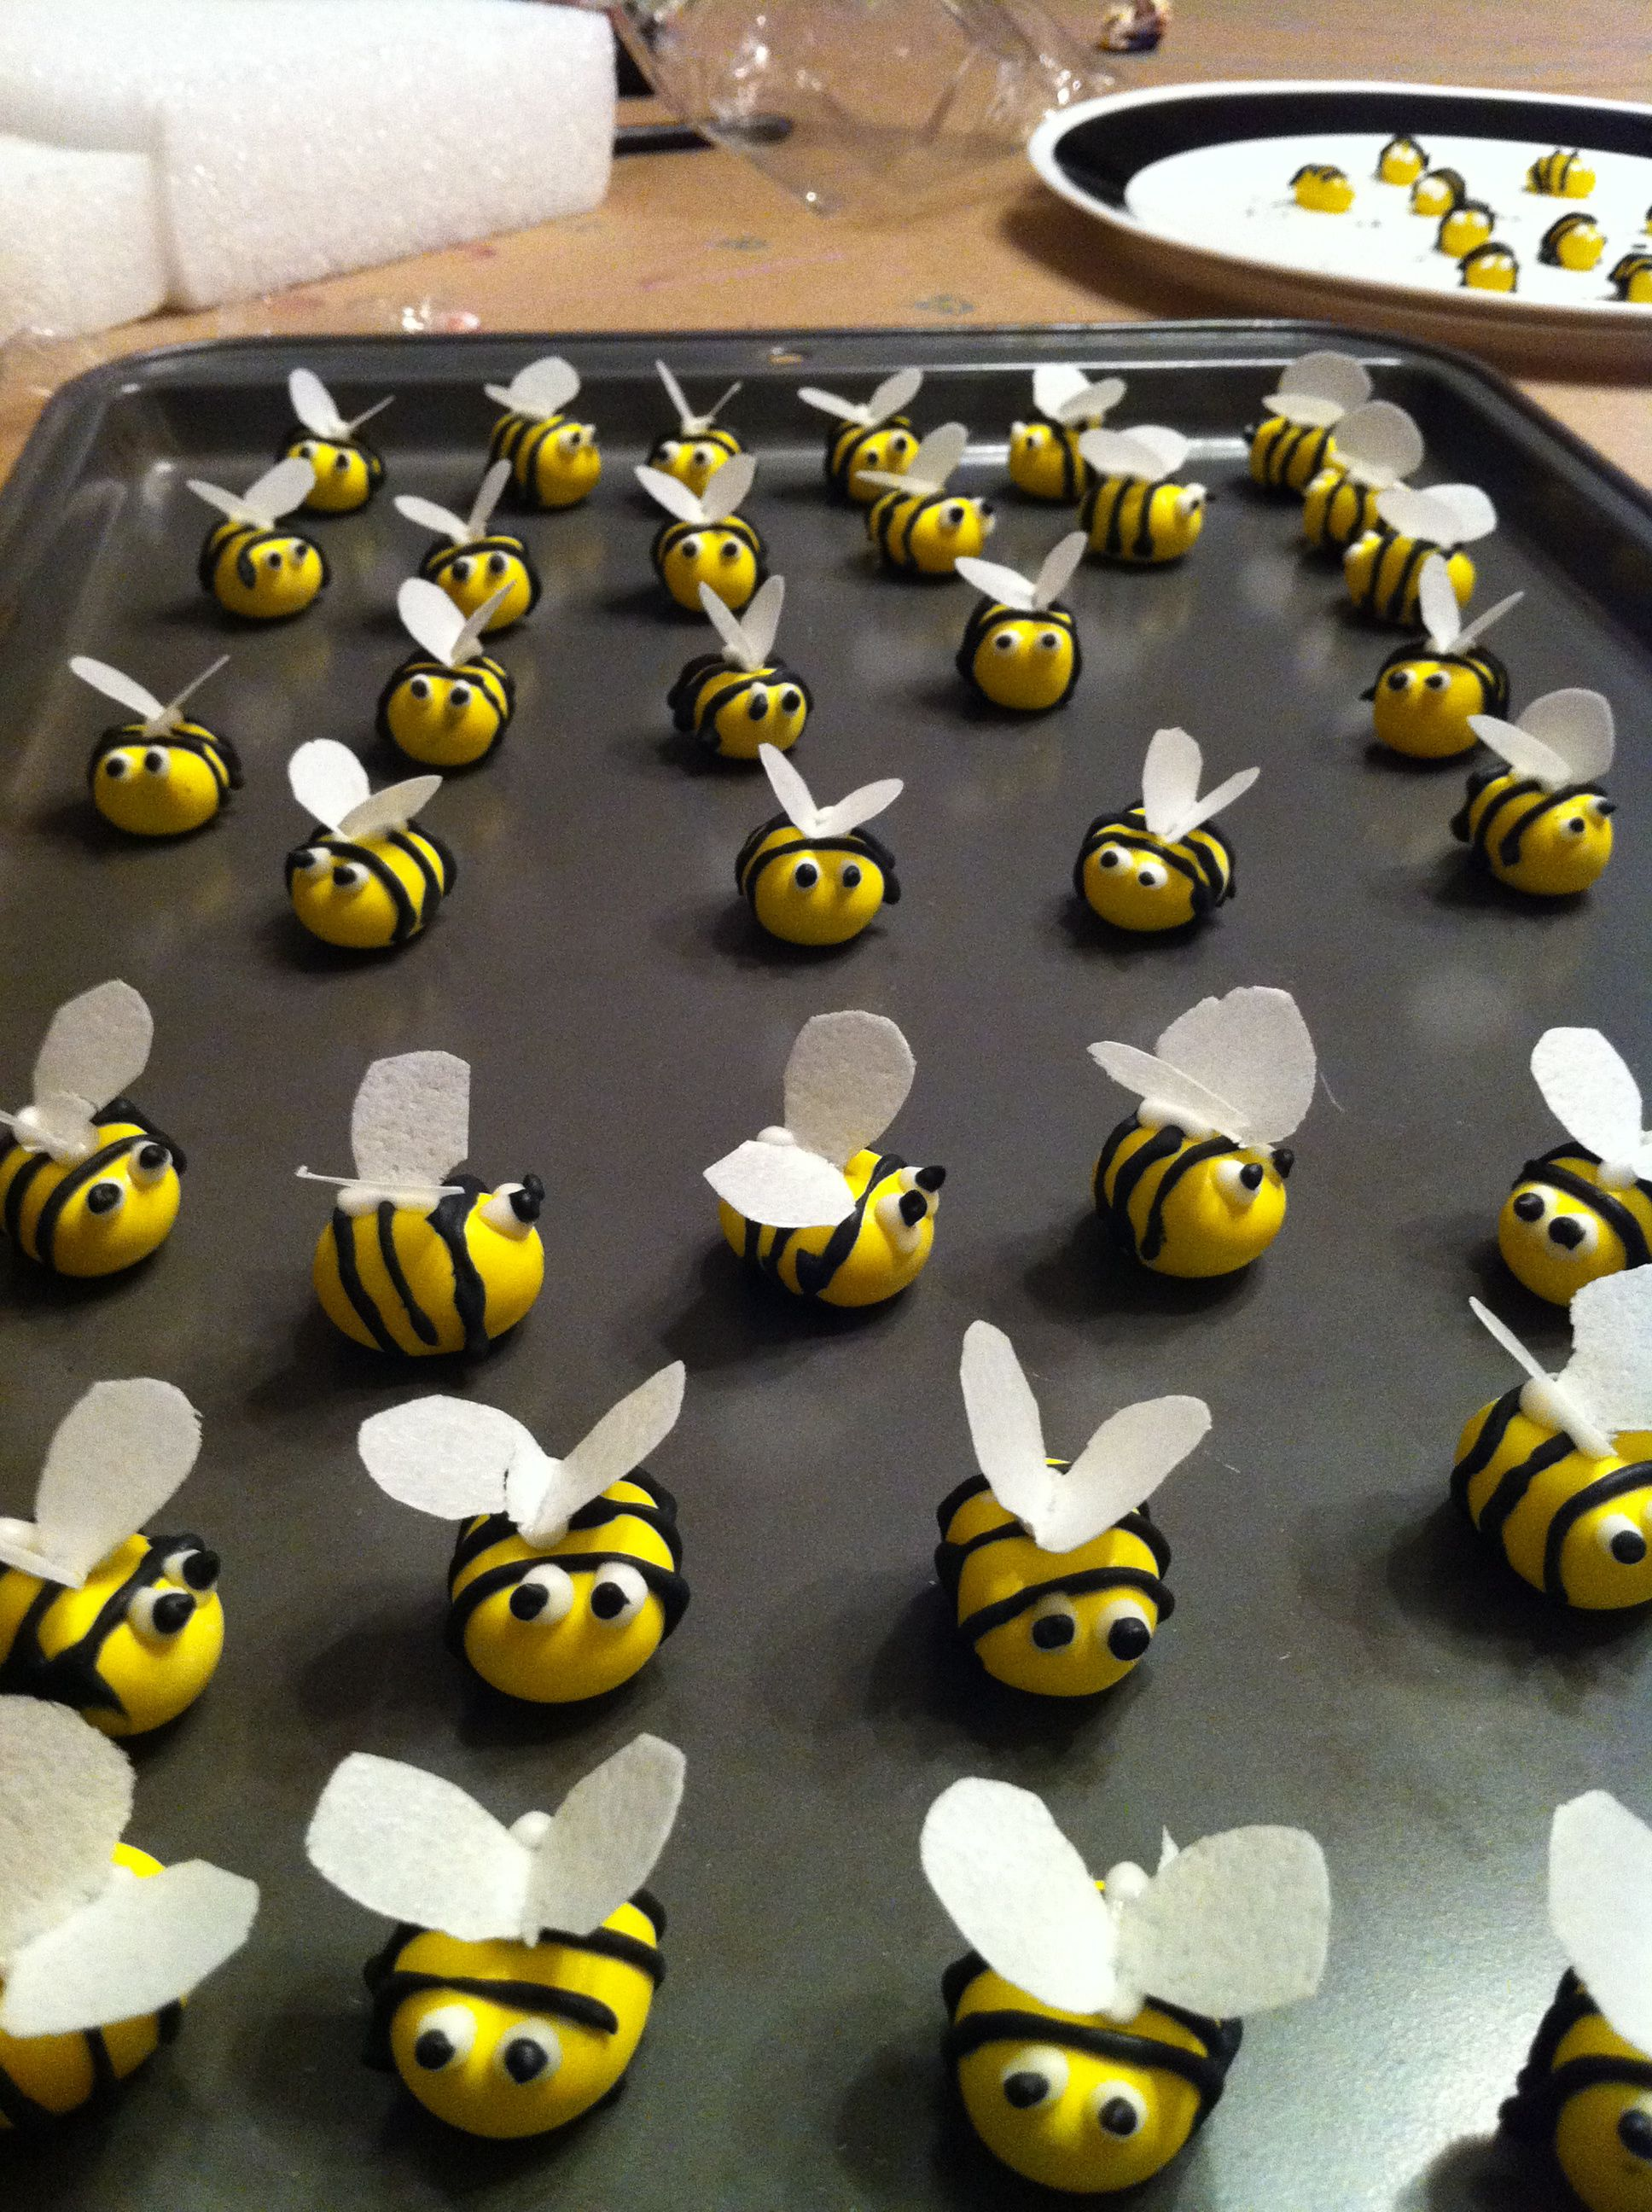 These Are Candy Bees For Cupcake Decorations But I Think Would Tweak This And